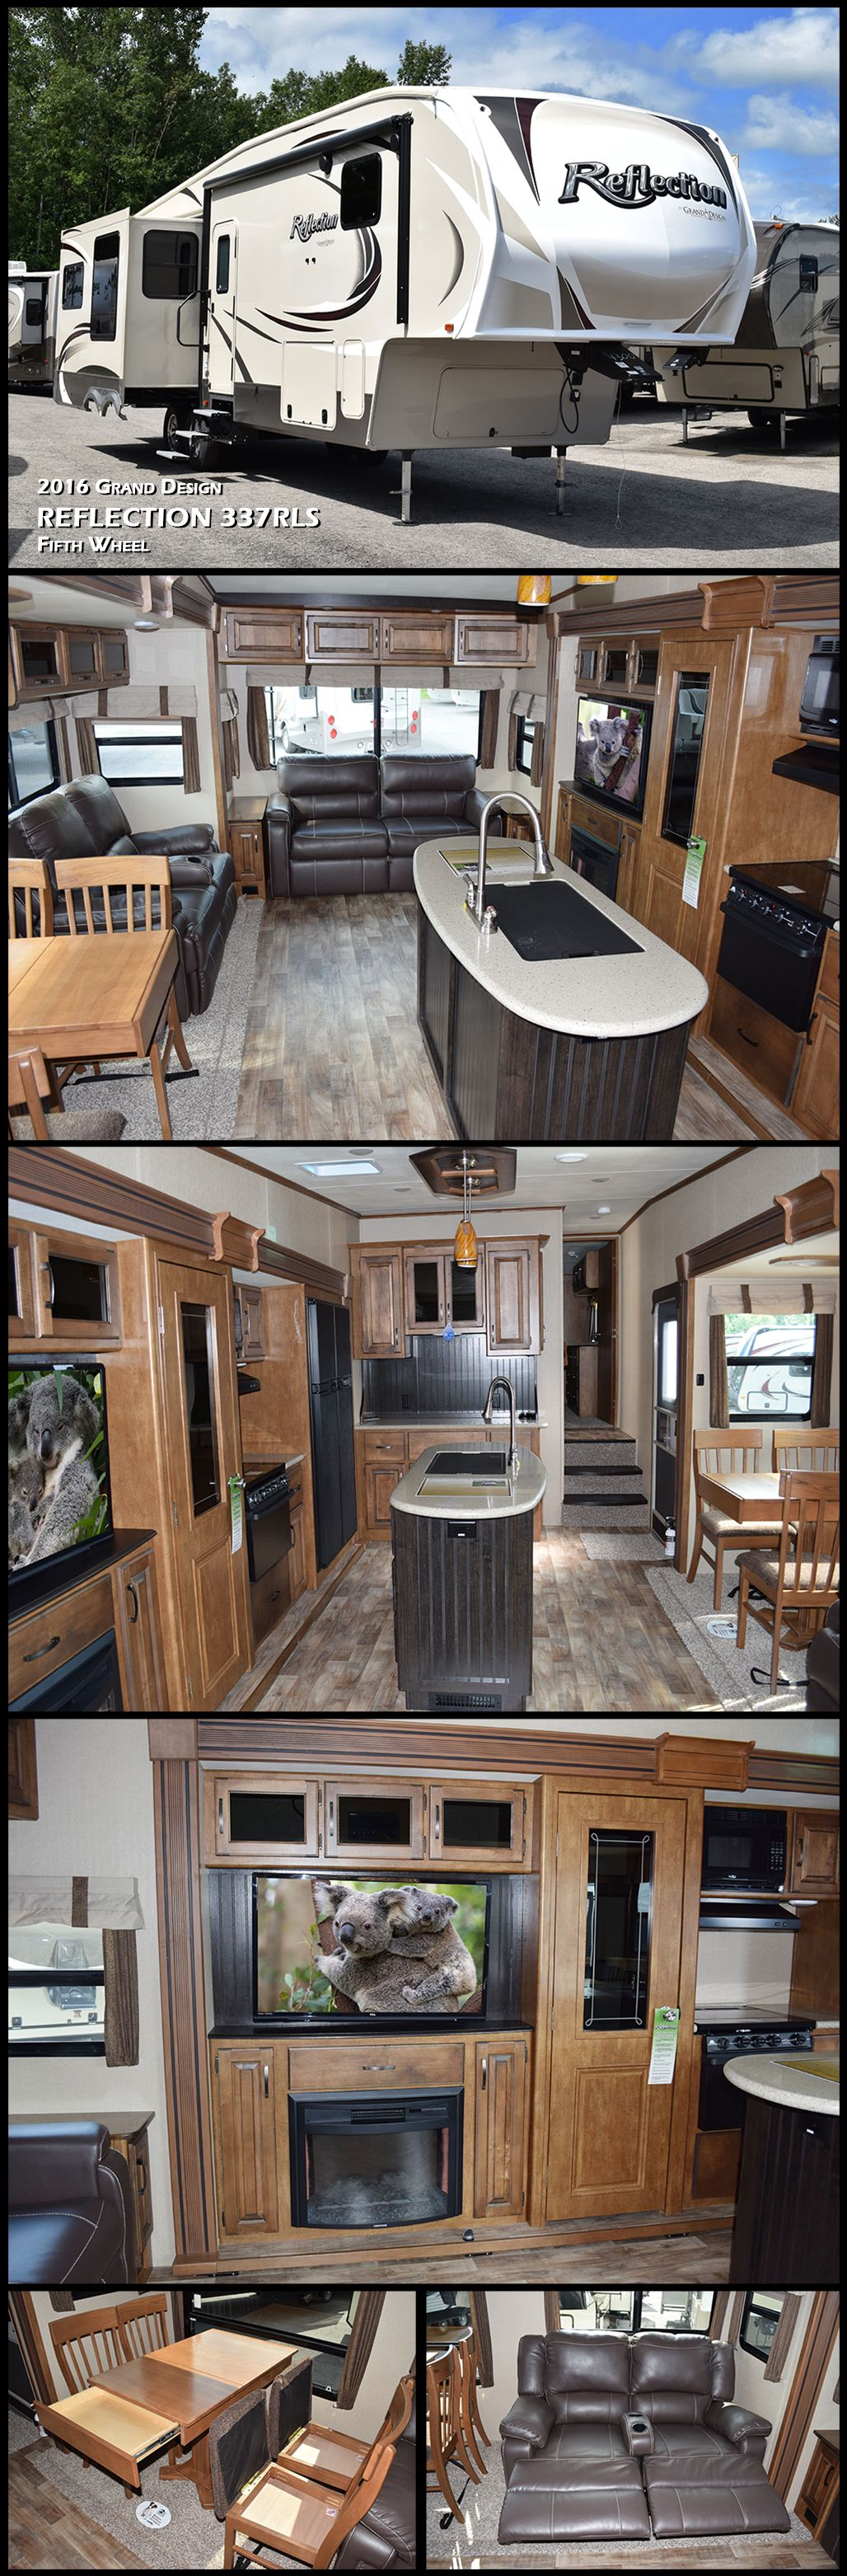 You Will Enjoy All The Comforts Of Home In A Convenient Rear Living Layout This 2016 REFLECTION Fifth Wheel By Grand Design